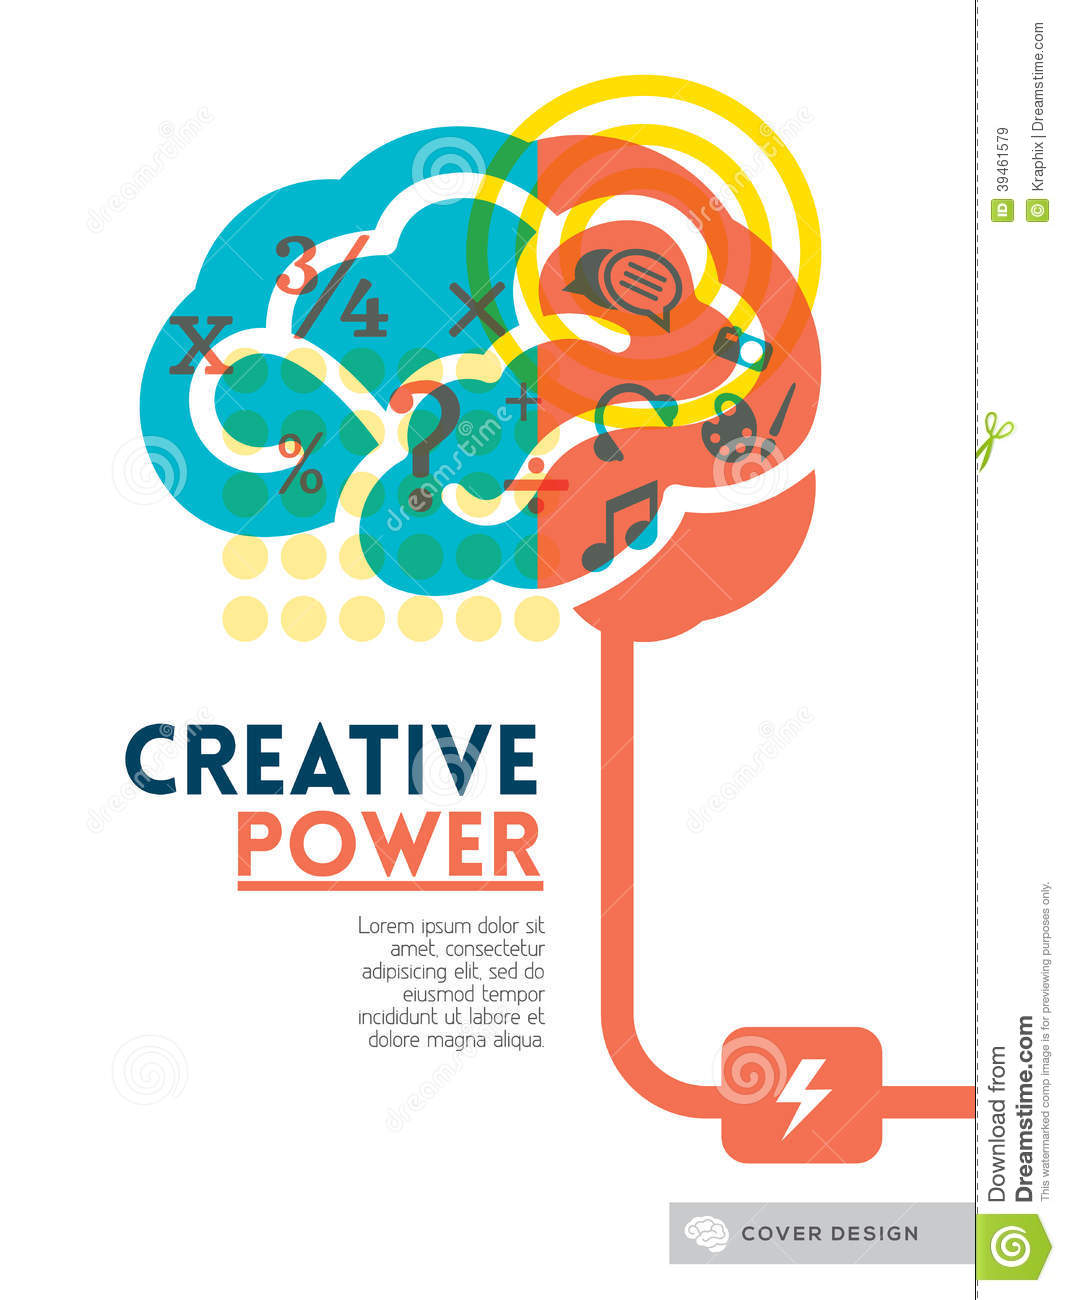 Royaltyfree Stock Photo With Creative Poster Designs Inspiration